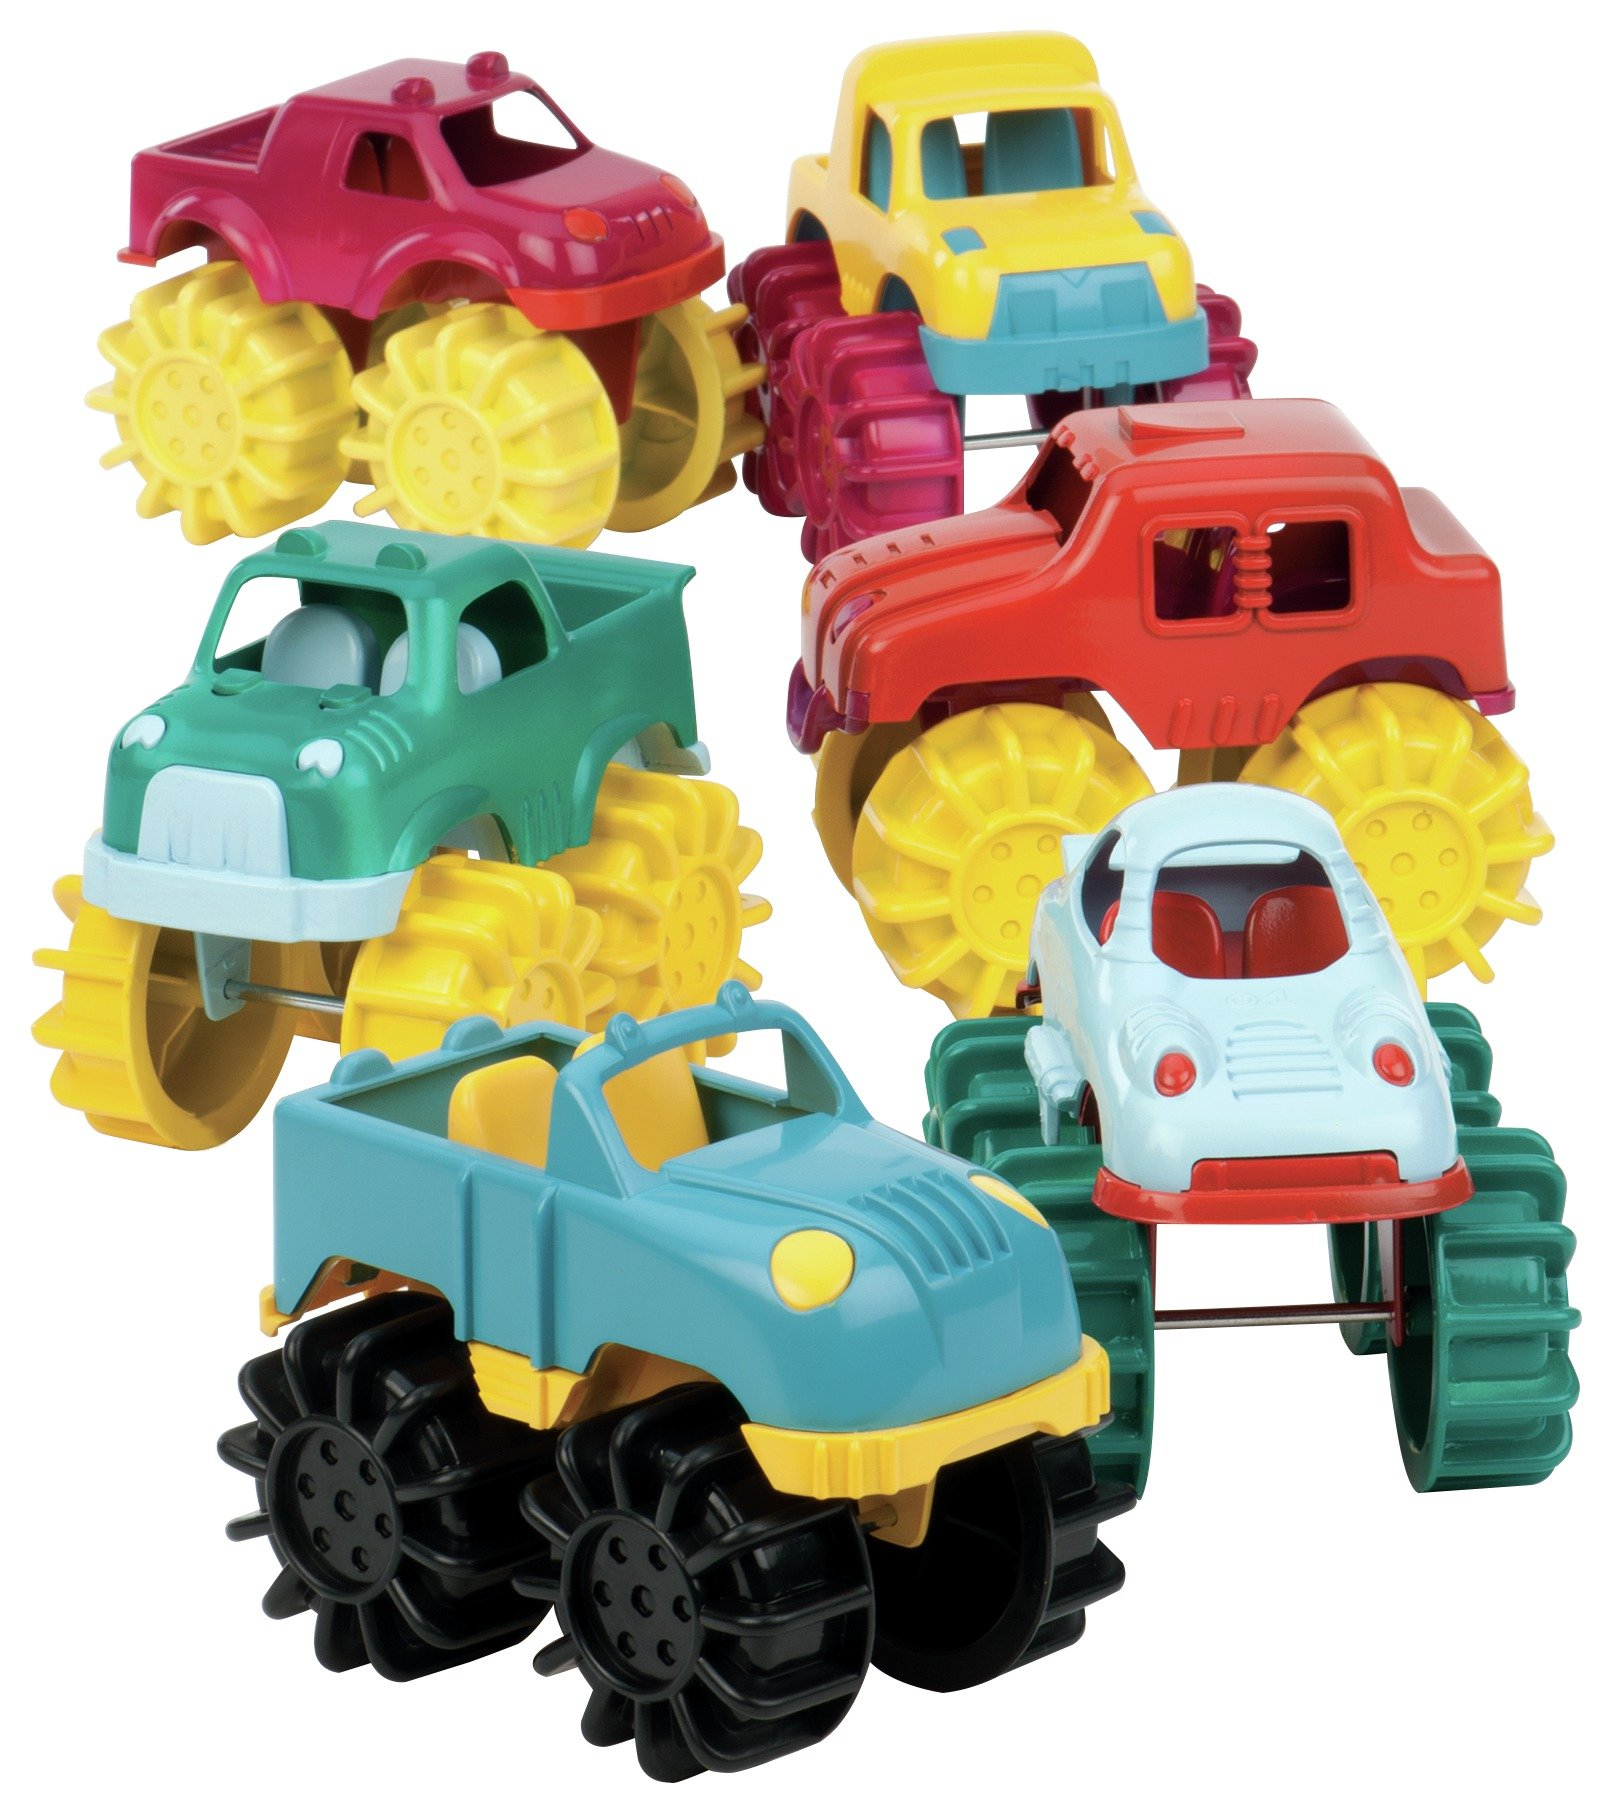 Image of Battat - Mini Monster Trucks.